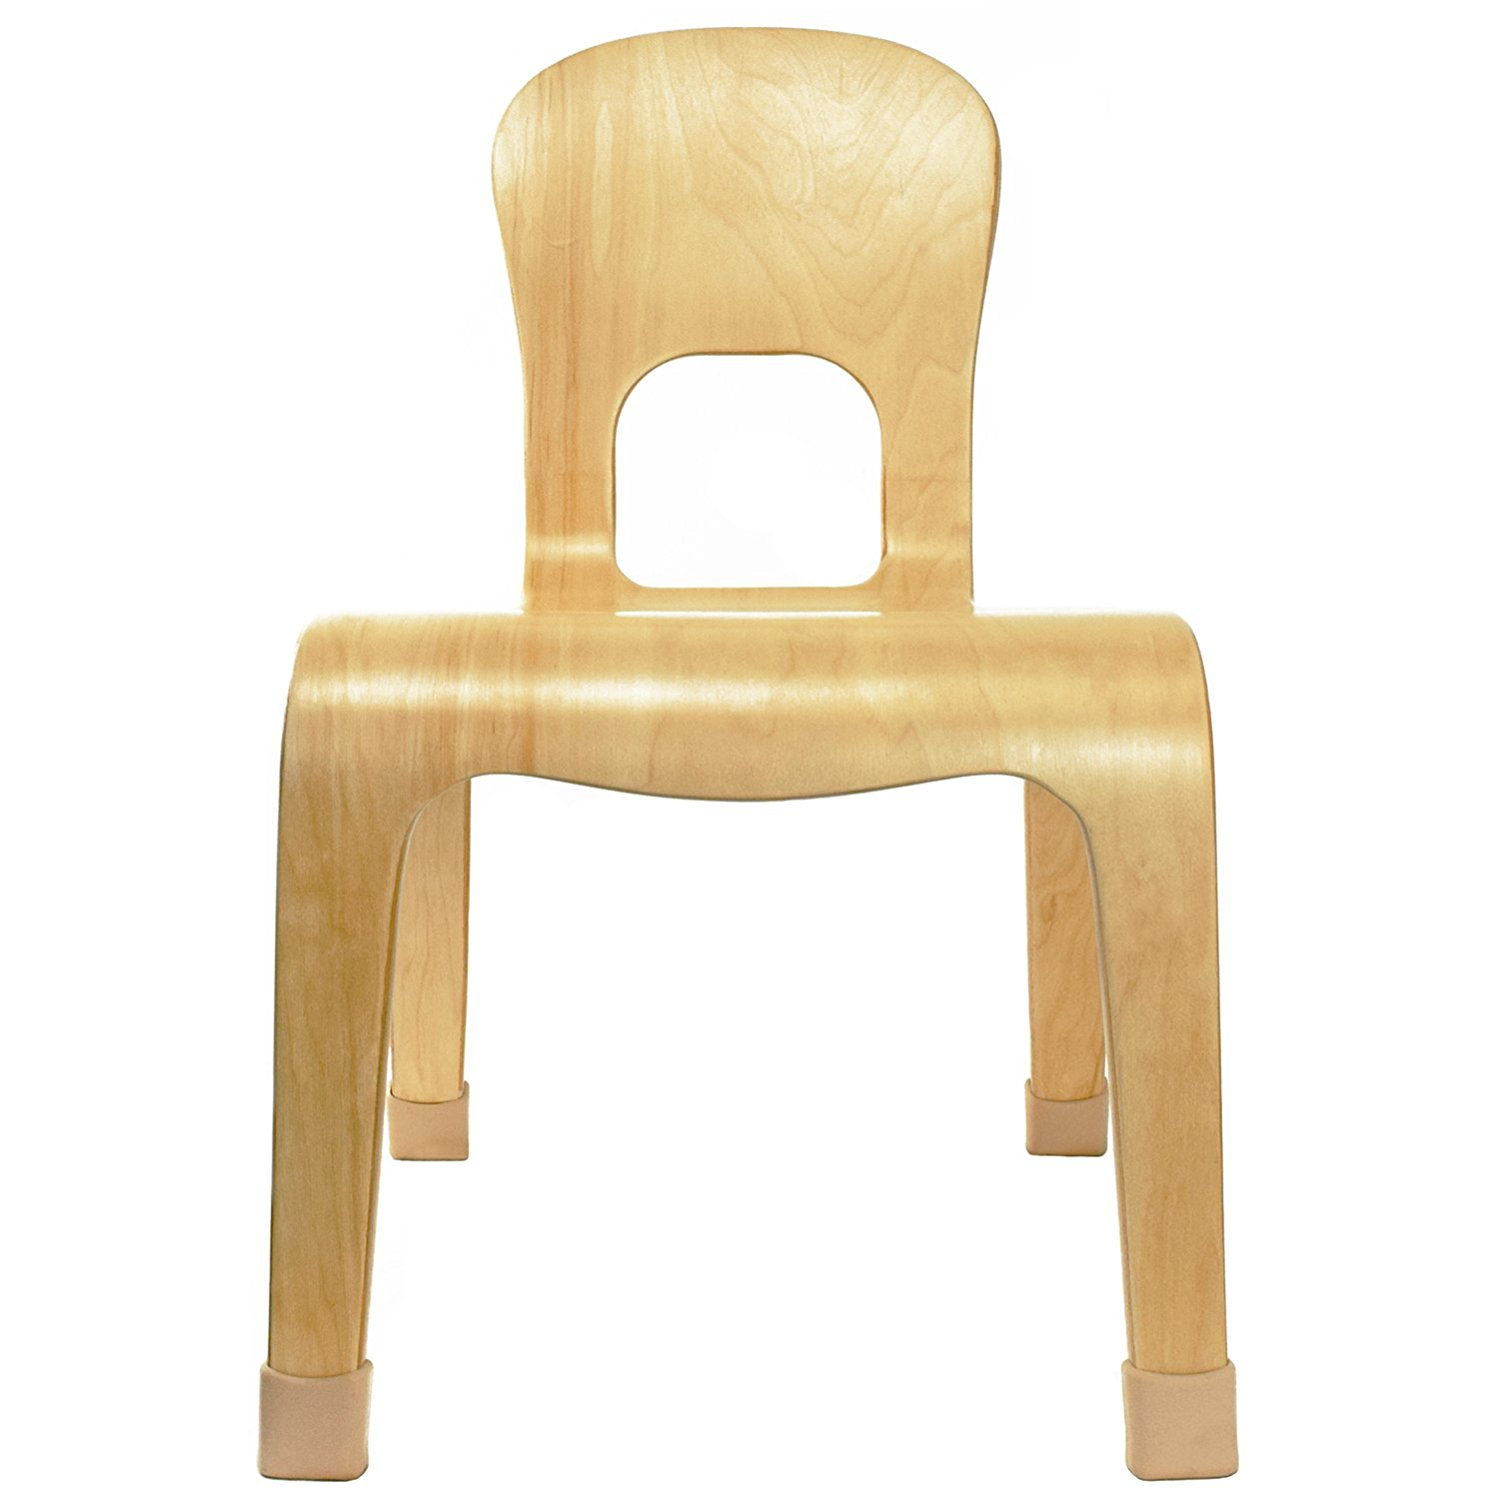 Cheap Personalised Wooden Childrens Chairs Find Personalised Wooden Childrens Chairs Deals On Line At Alibaba Com